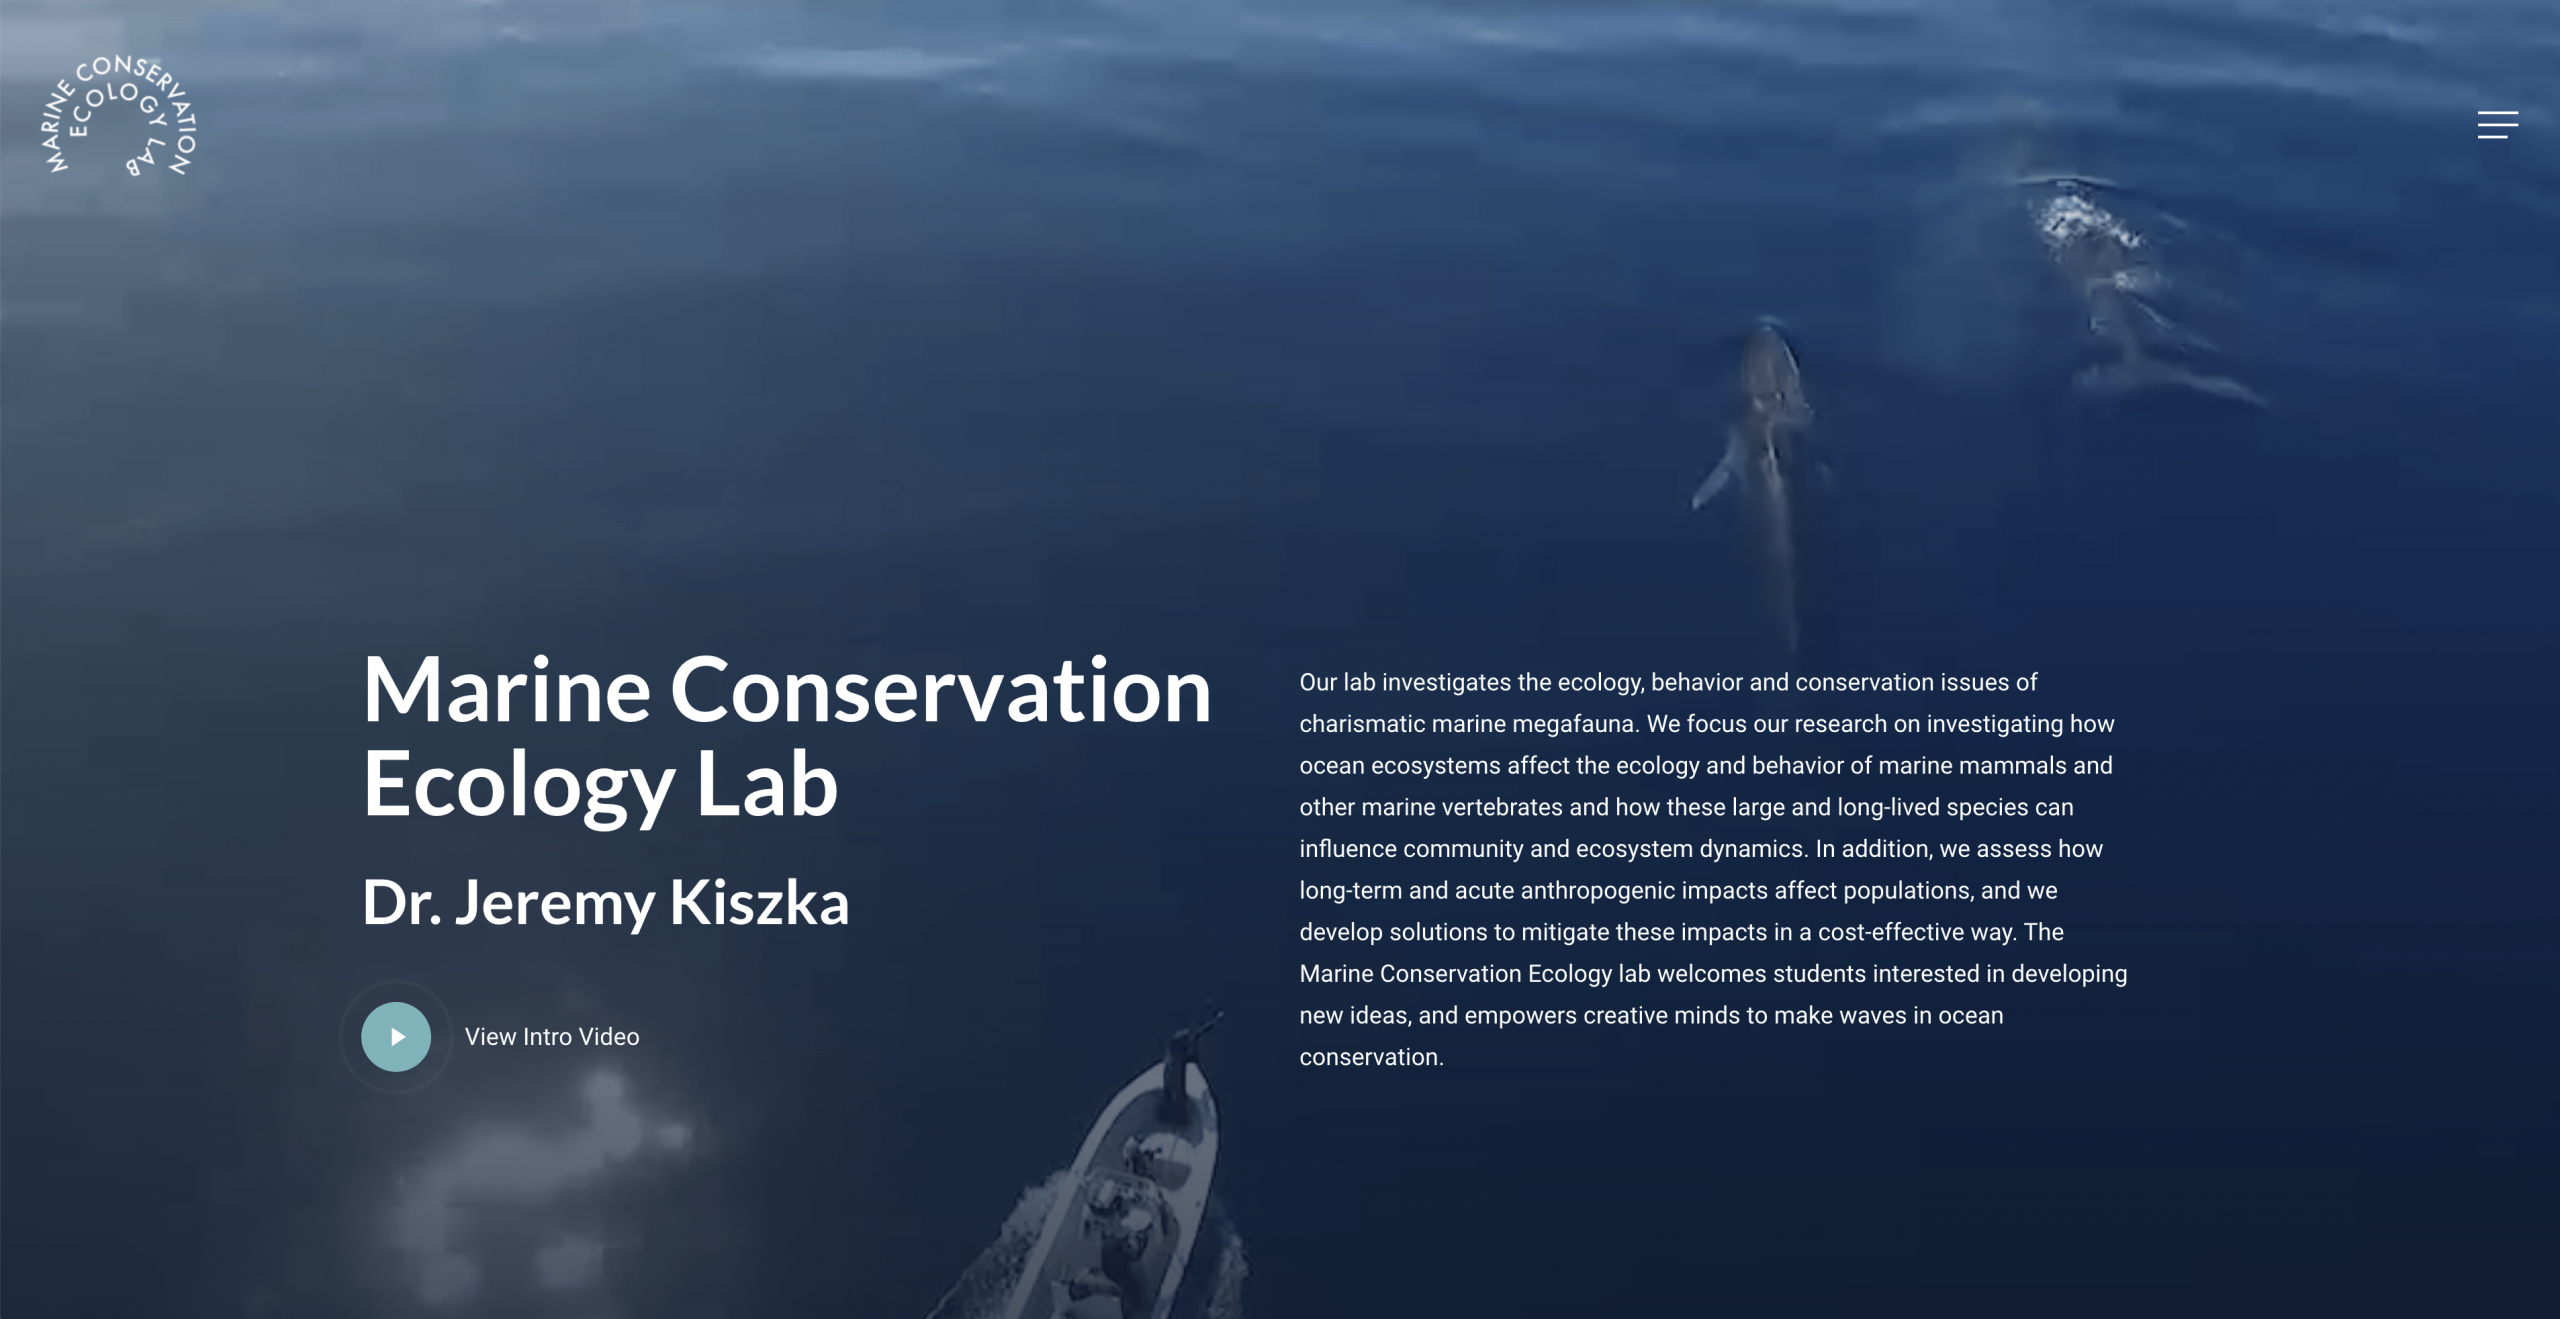 Website for the Marine Conservation Ecology Lab